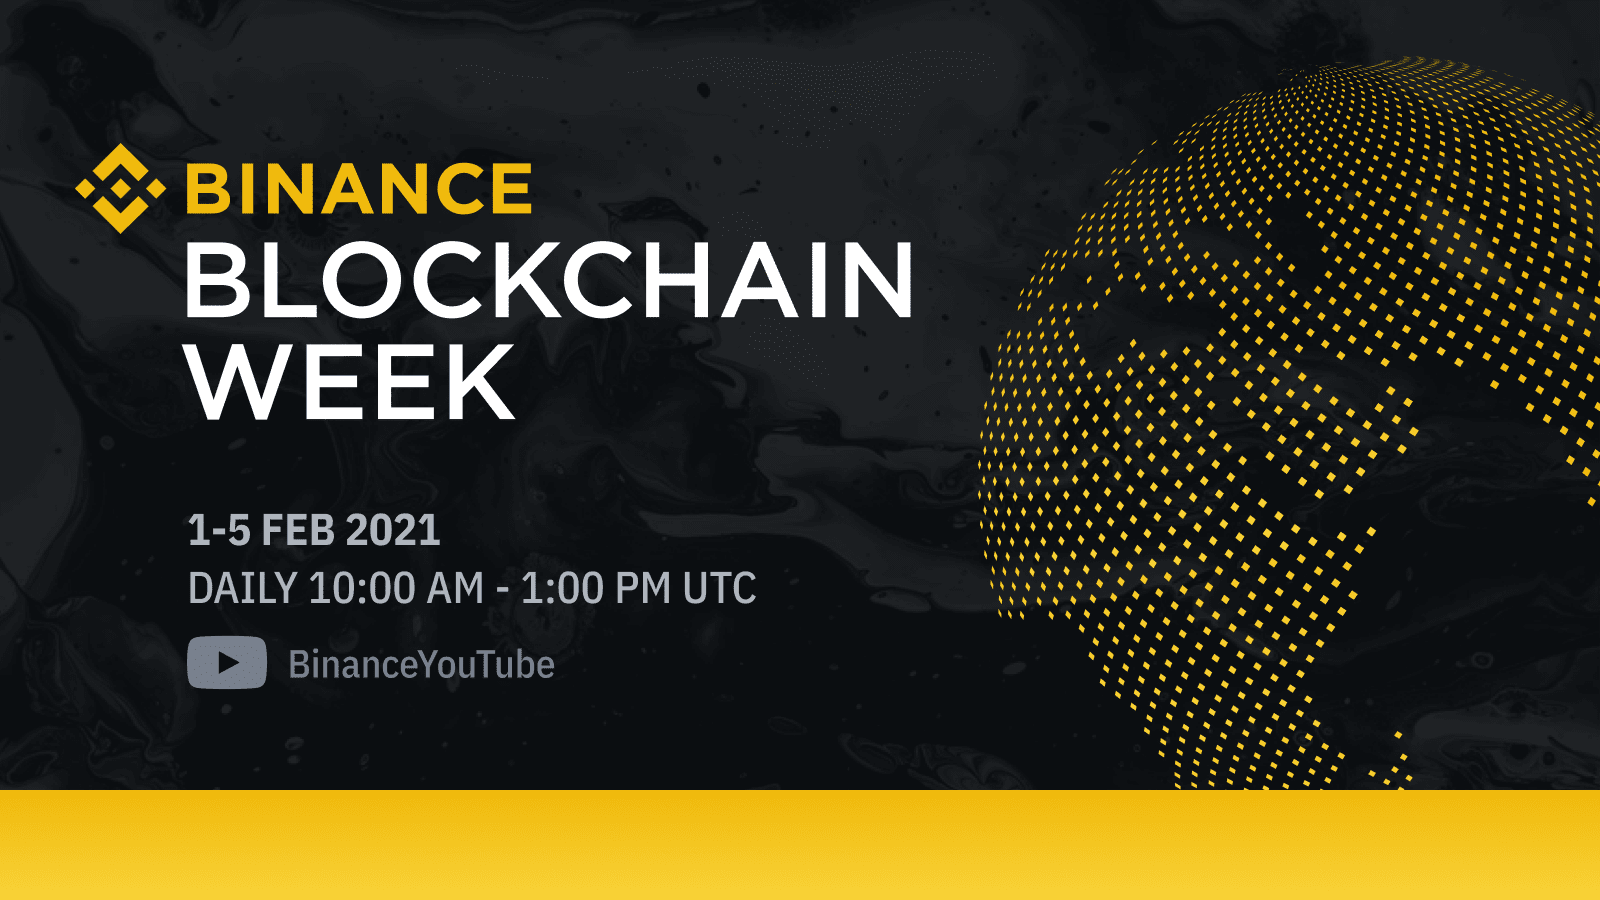 Binance-Blockchain-Week-2021